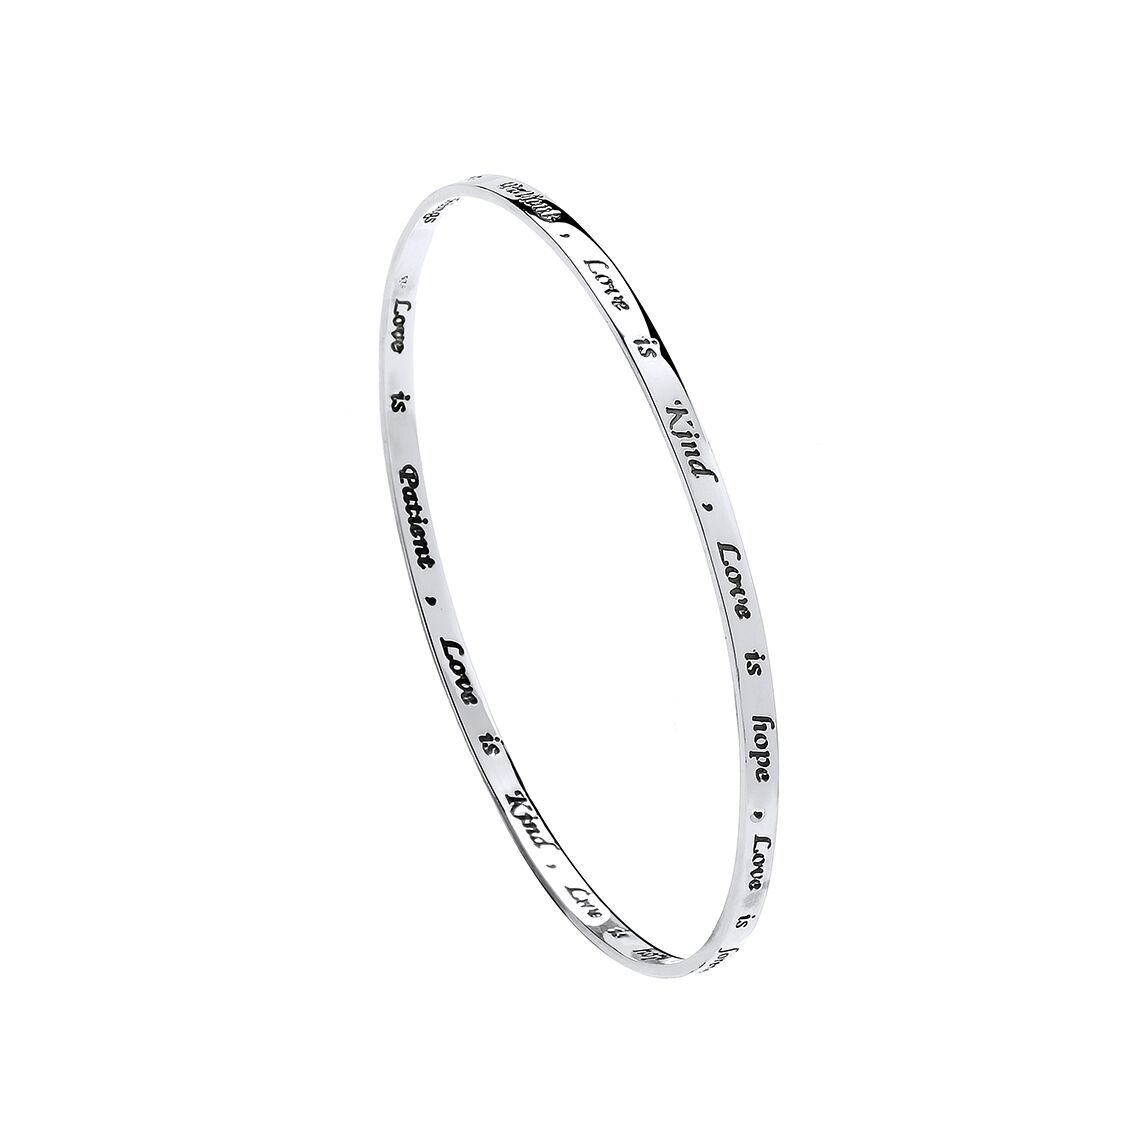 Silver bangle for ladies with messages of love inscribed around the outside